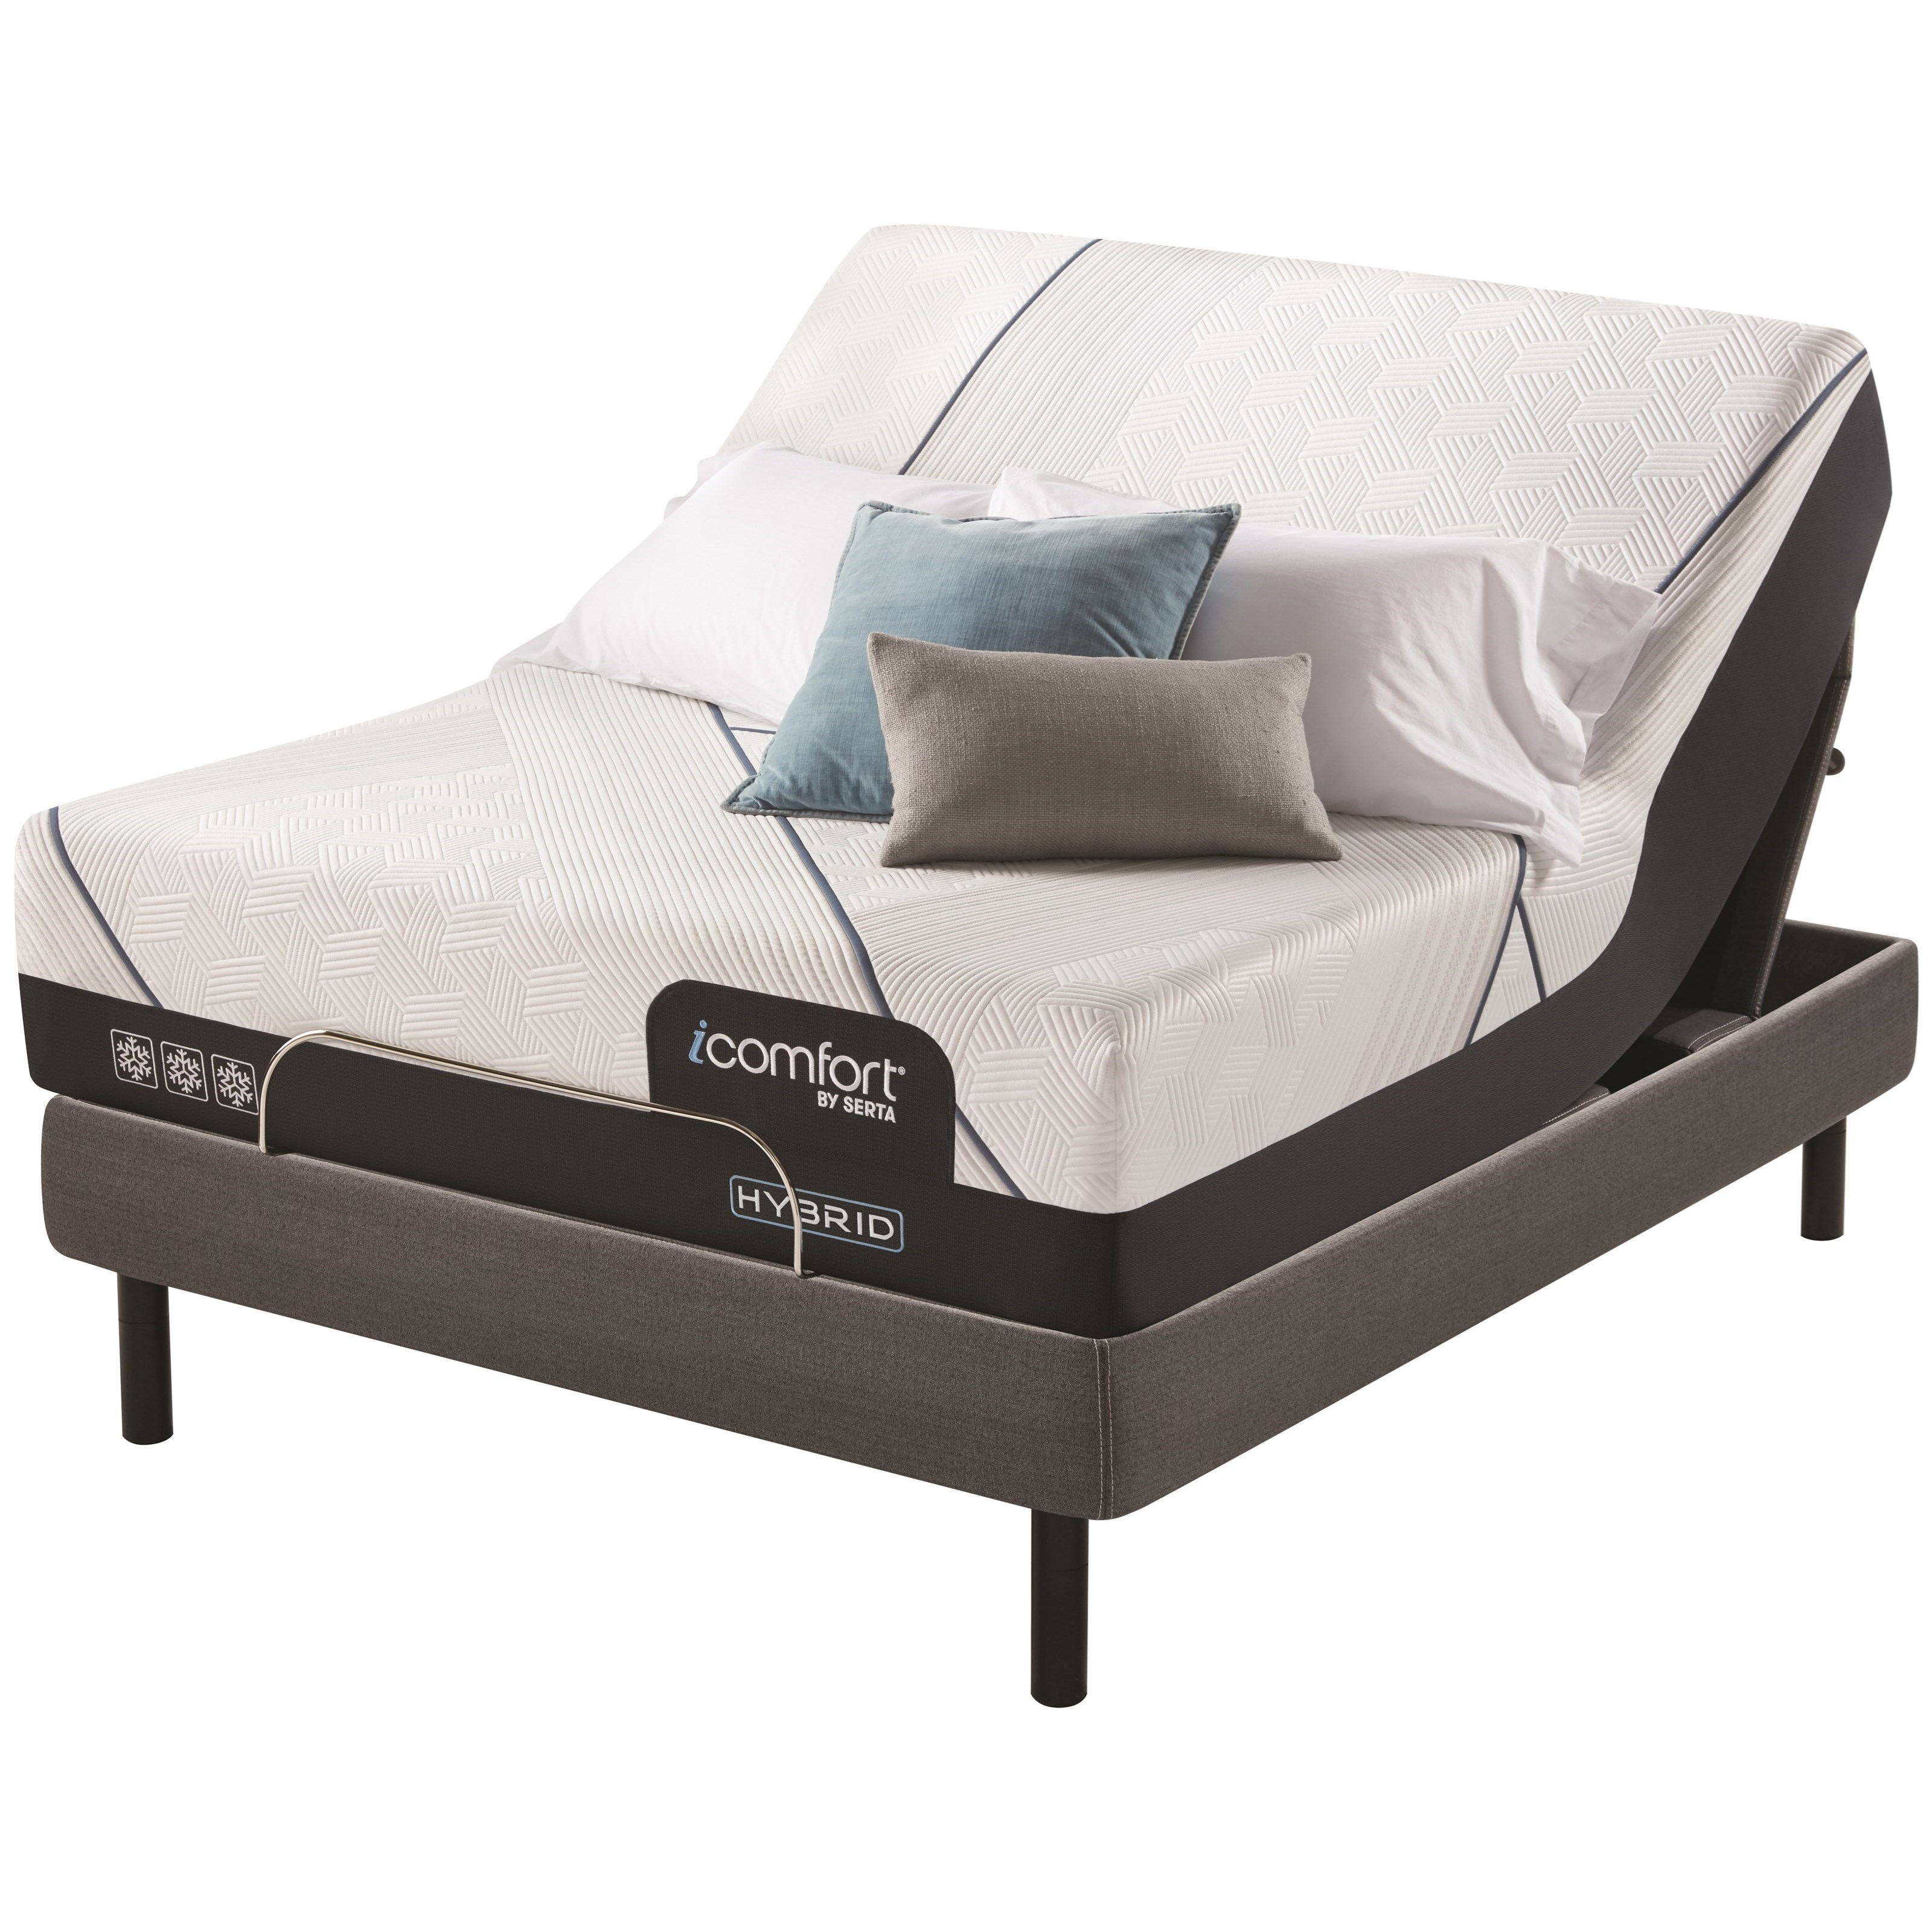 "CF4000 Hybrid Plush Queen 14"" Plush Hybrid Adj Set by Serta at Miller Waldrop Furniture and Decor"